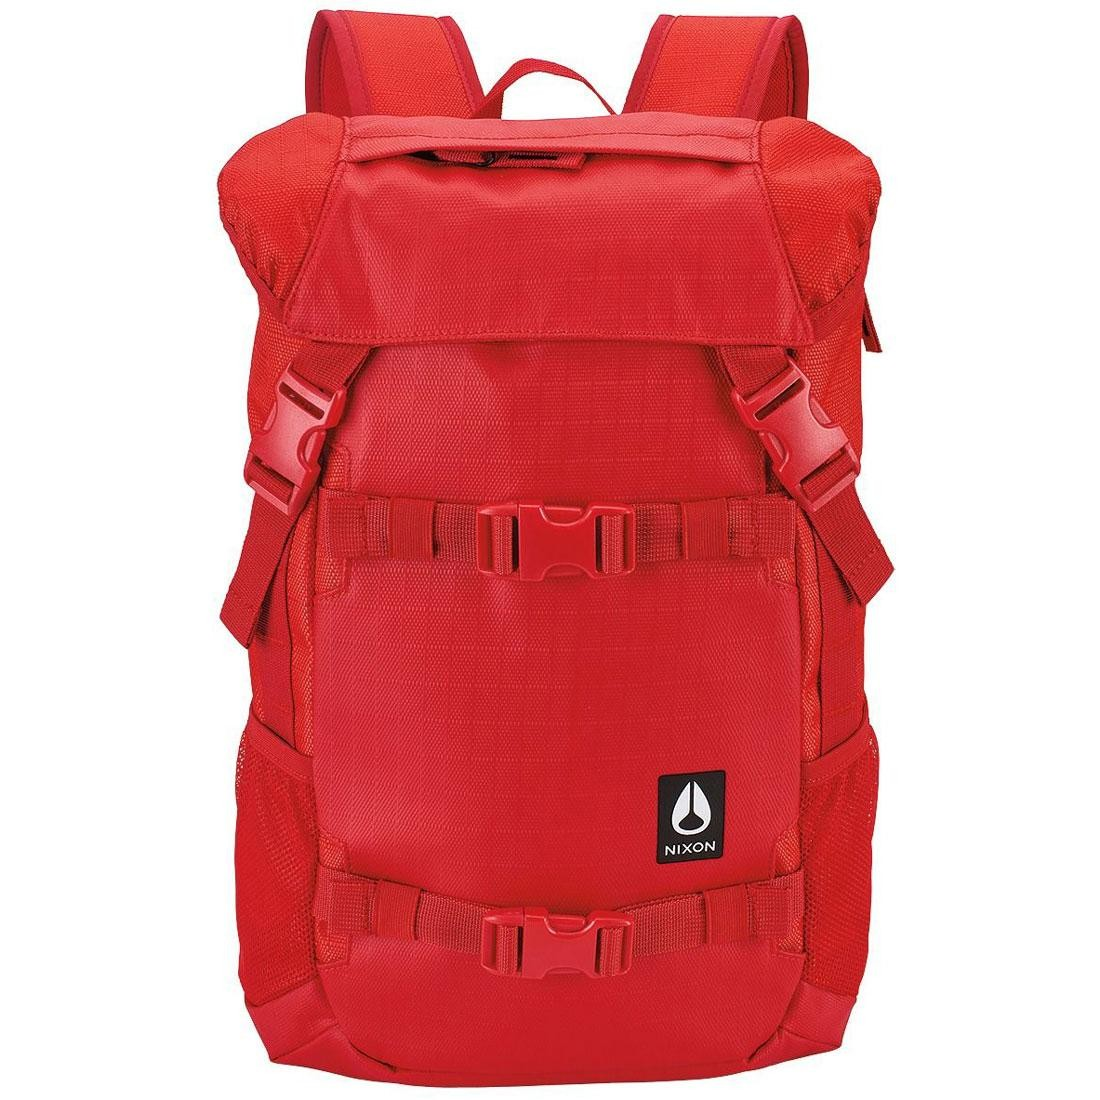 Nixon Landlock Backpack - RED (red / all red)